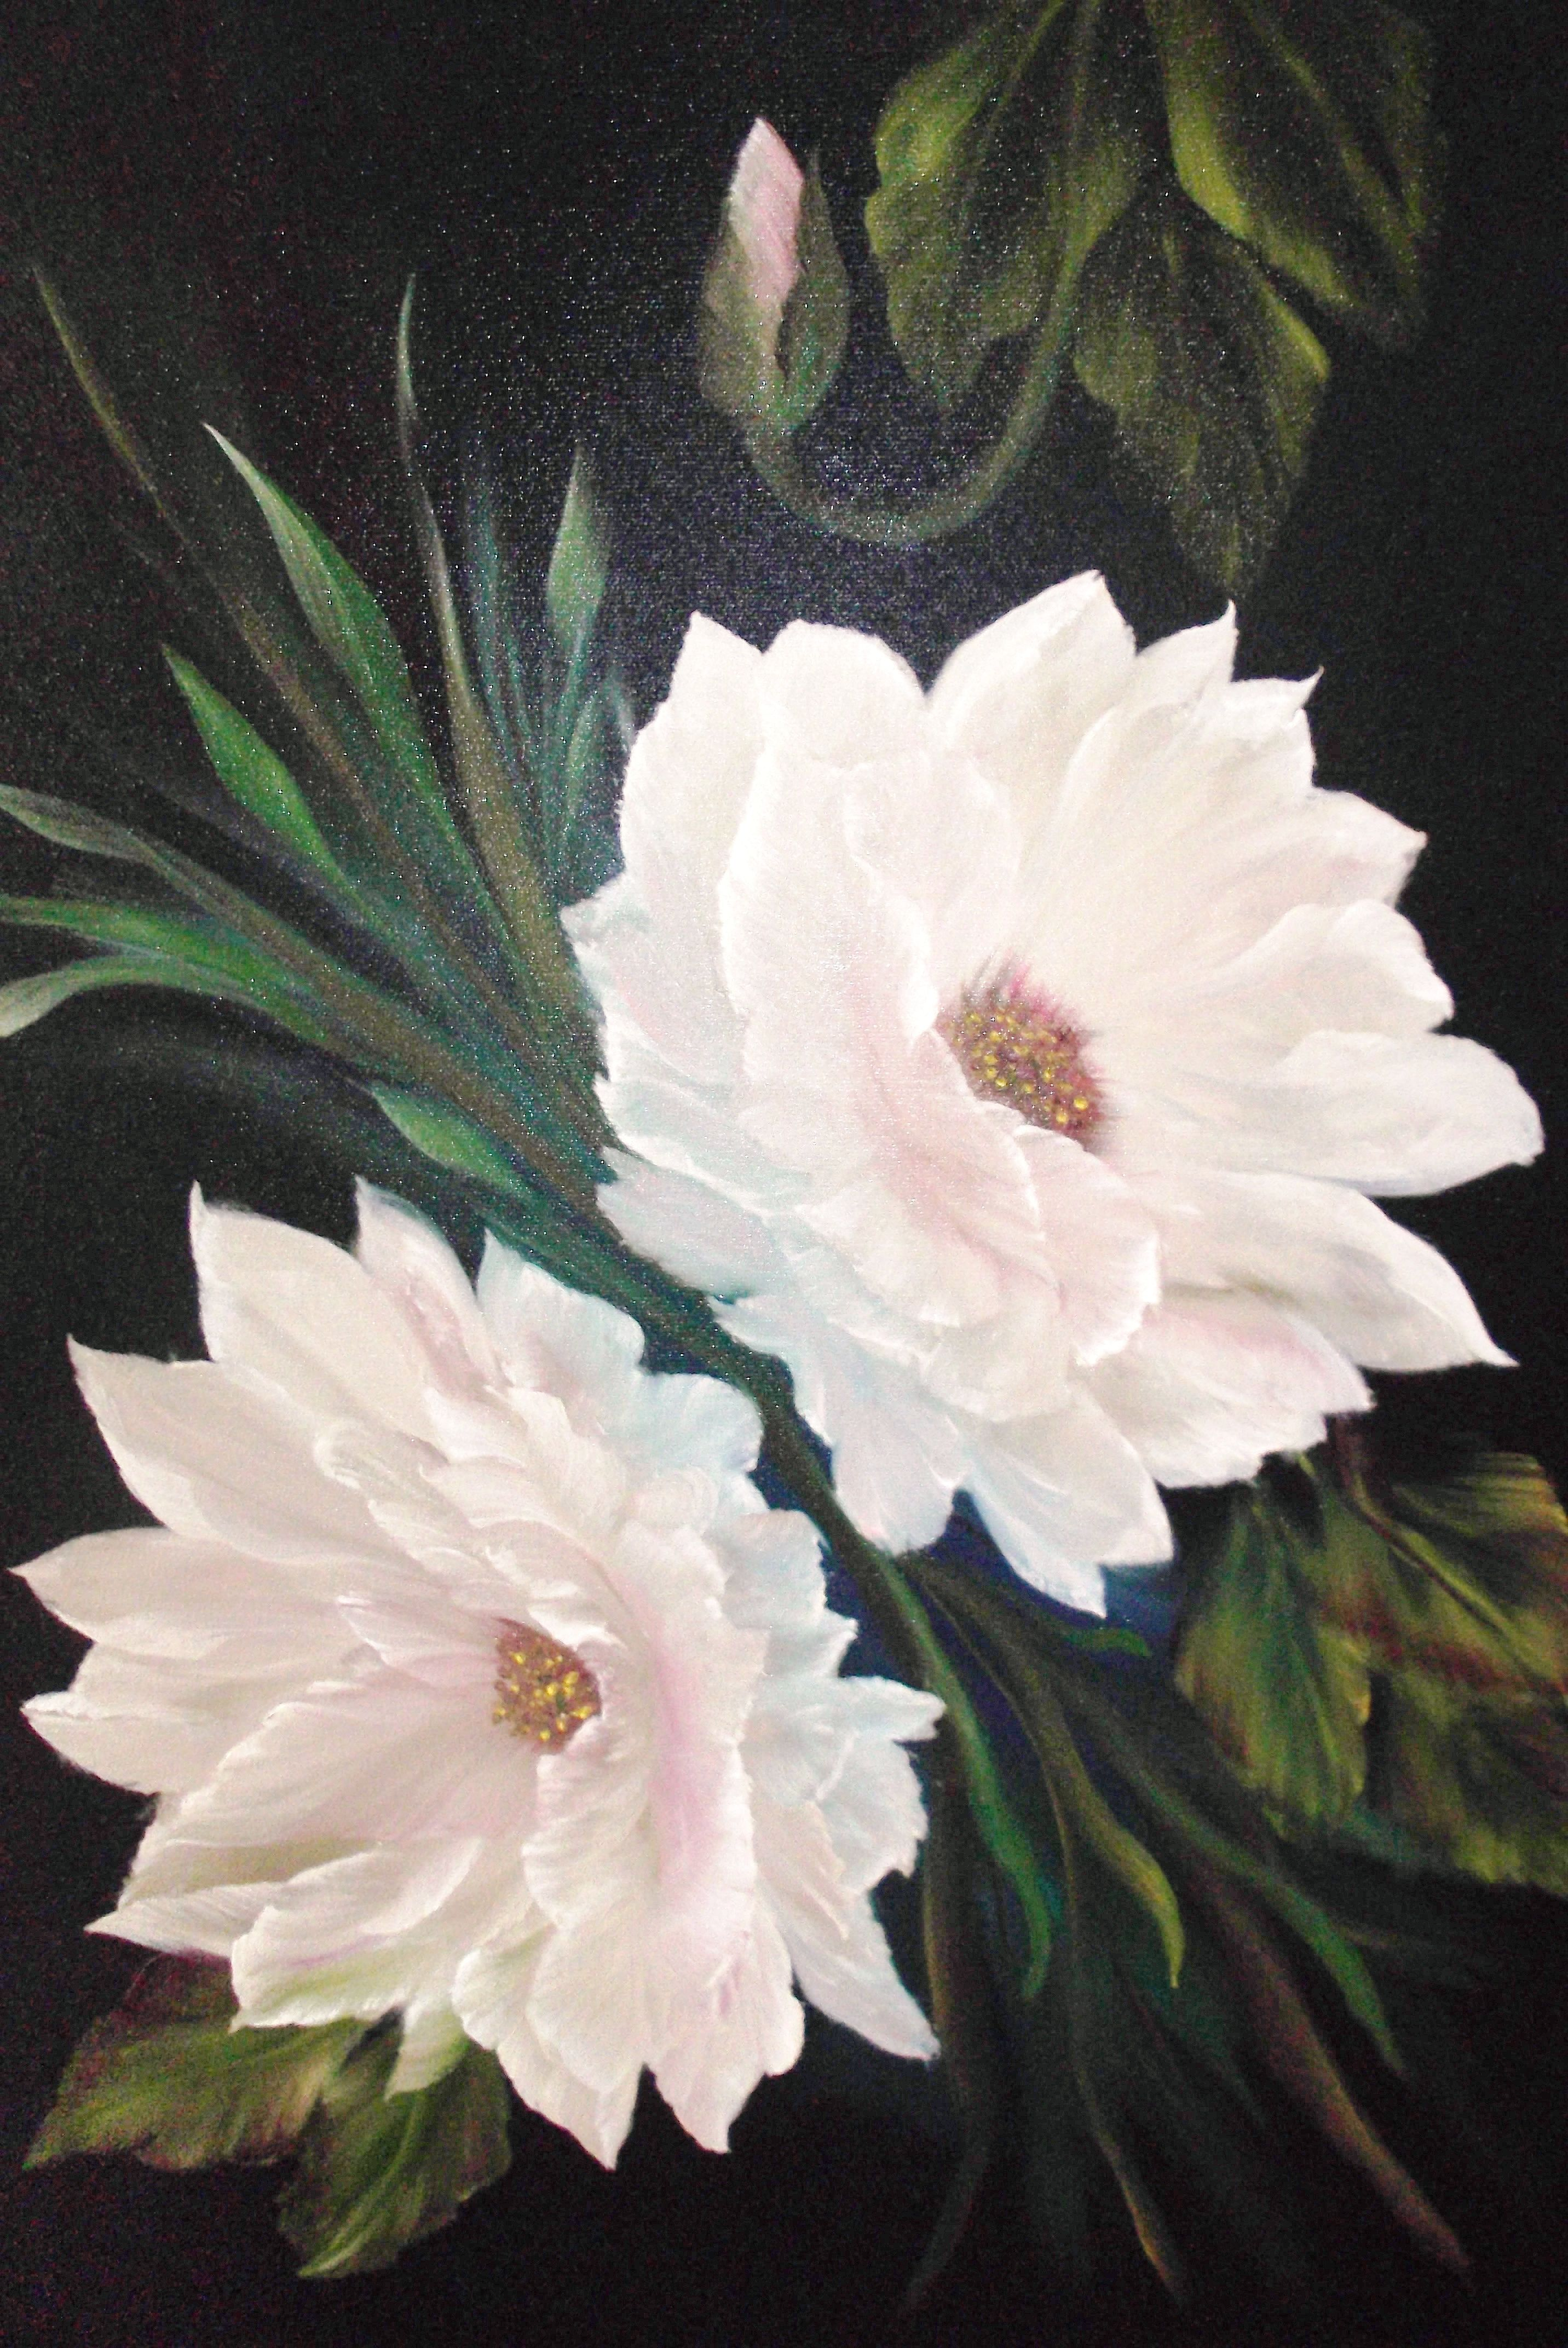 White flowers painted 10 03 12 painted flowers pinterest white white flowers painted 10 03 12 mightylinksfo